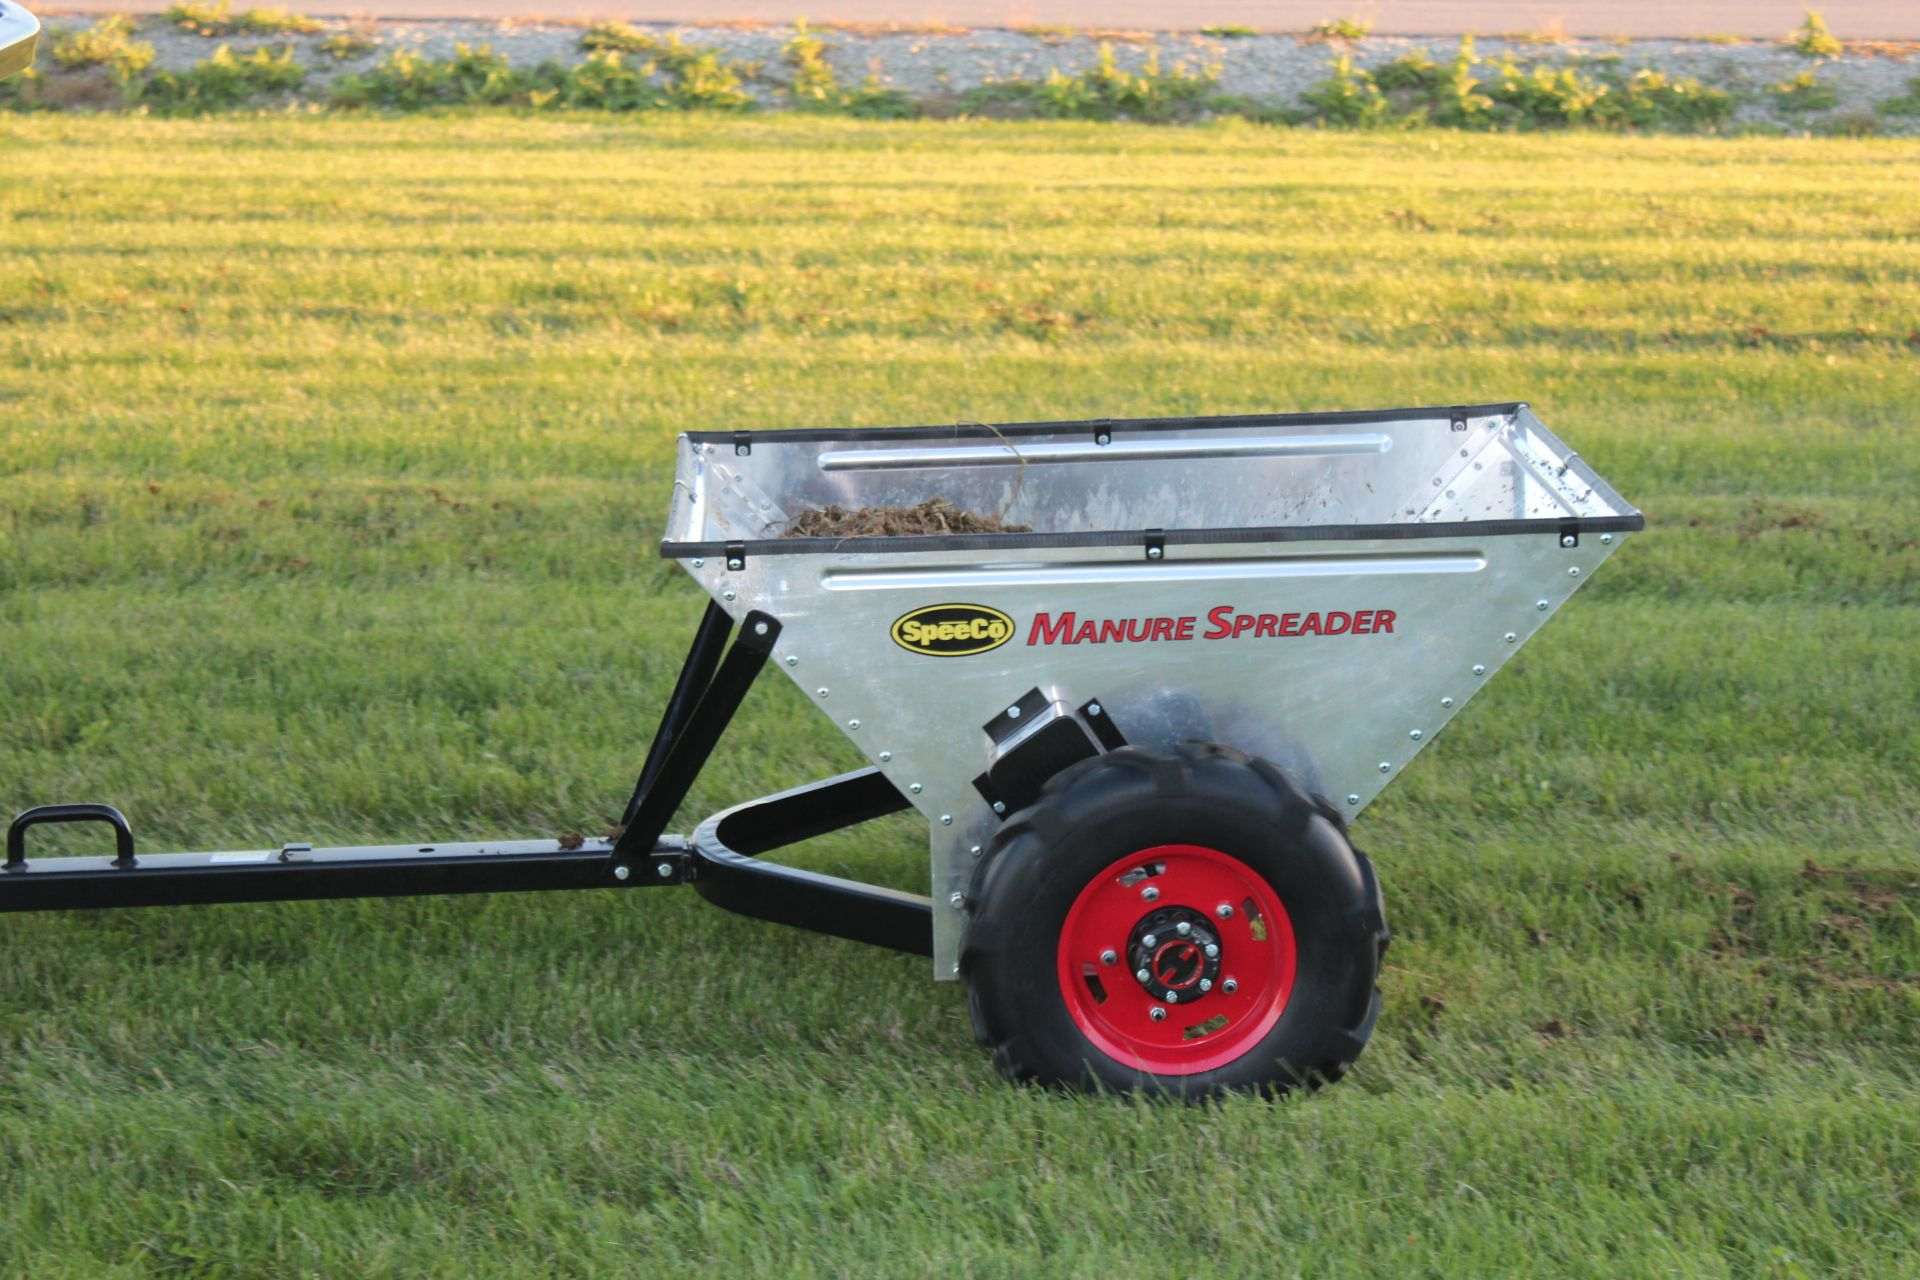 Horse Manure Spreader : Our small manure spreader chicken scratch hobby farm